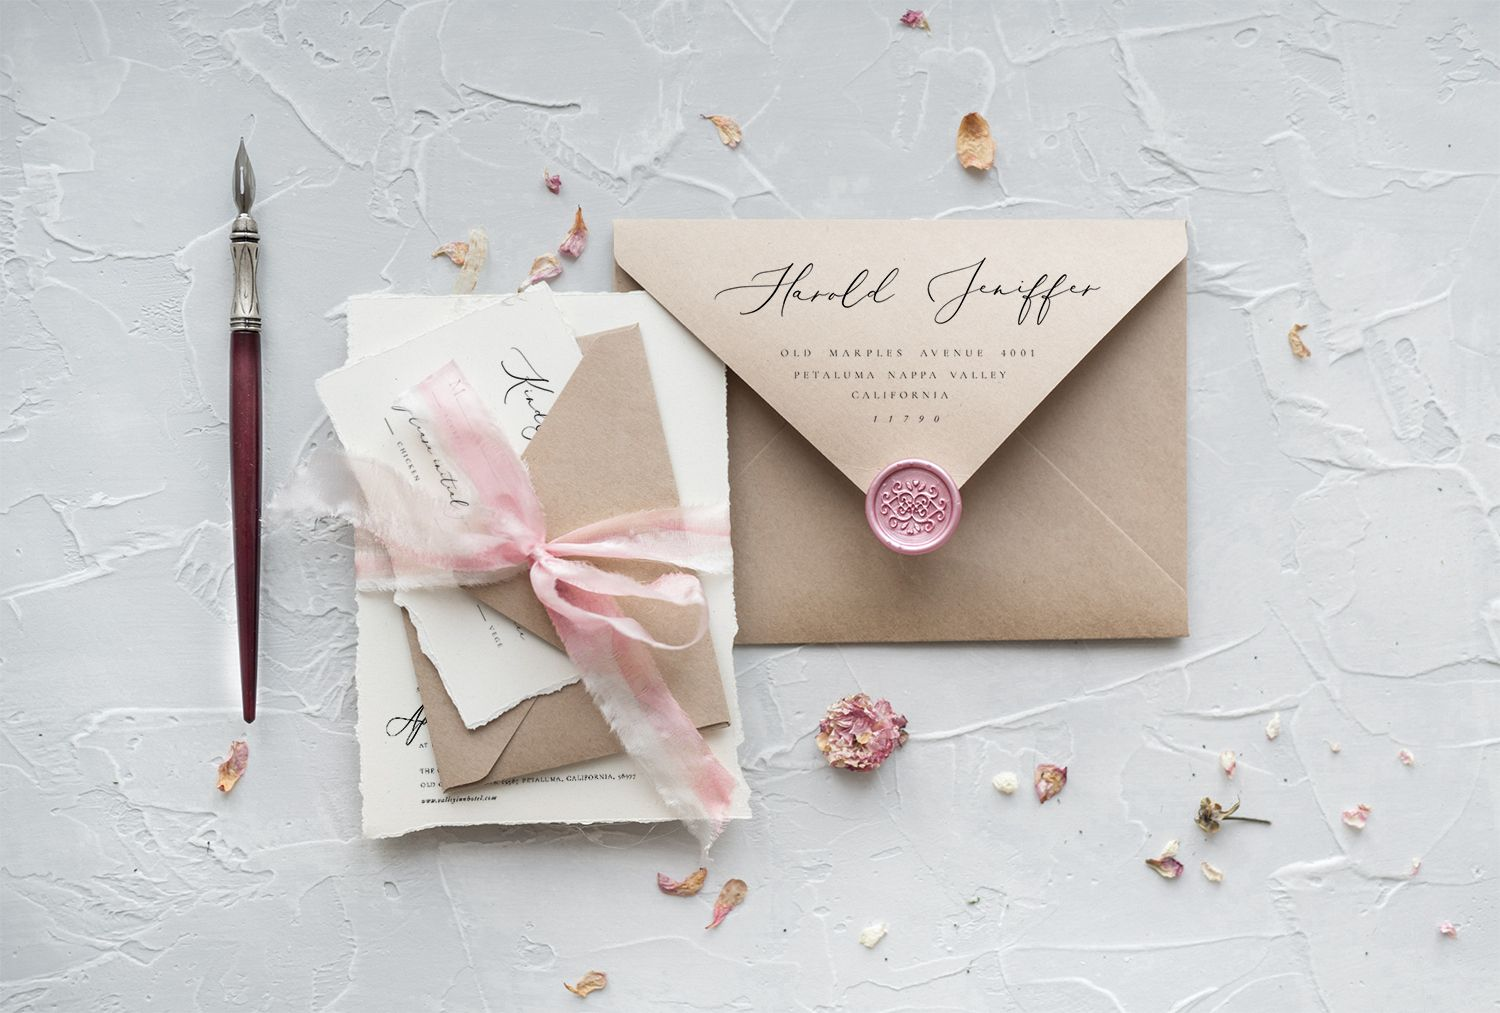 3 60 Sophisticated Custom Made Wedding Invitations For Your Fine Art This Elegant Invitation